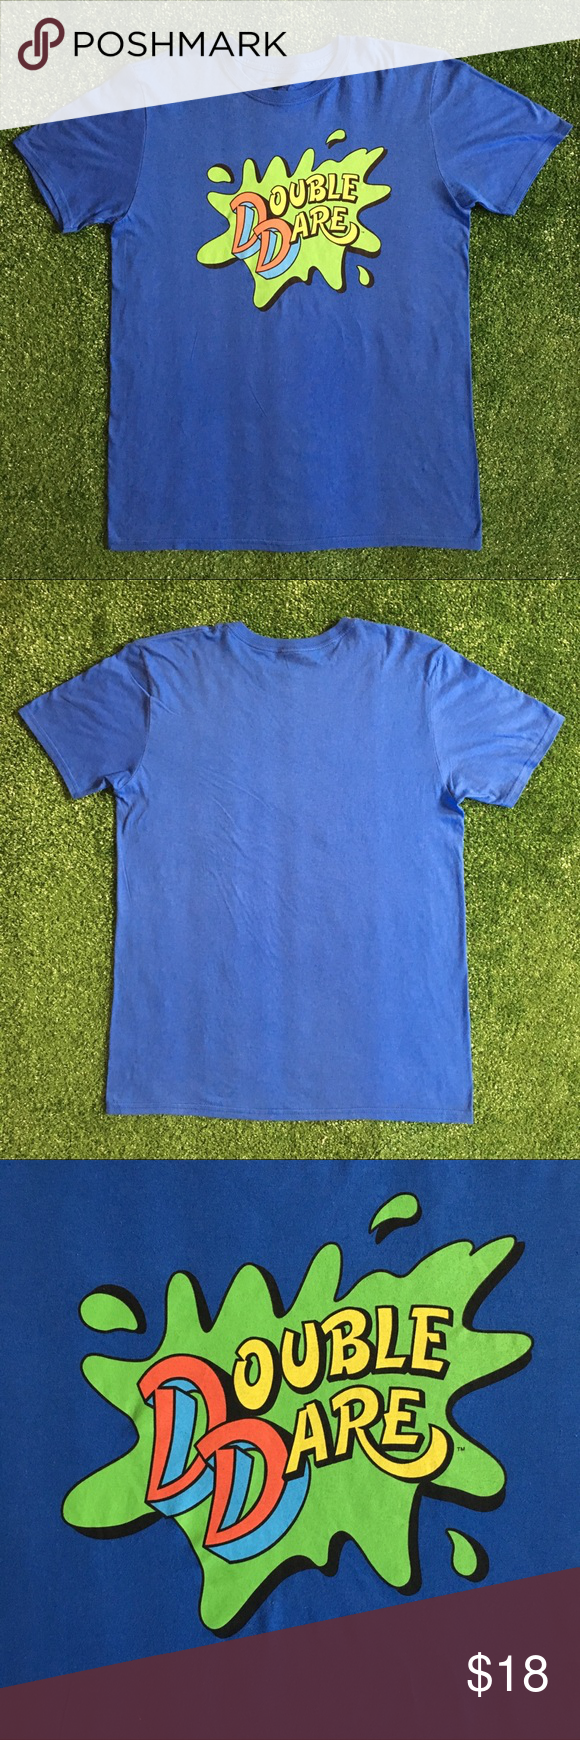 Nickelodeon Double Dare 2000 Tee Double Dare Logo Print On Blue Tee Condition 10 10 From 2018 Nickelodeon Shirts Tees Short Slee 2000 Tees Tees Blue Tee